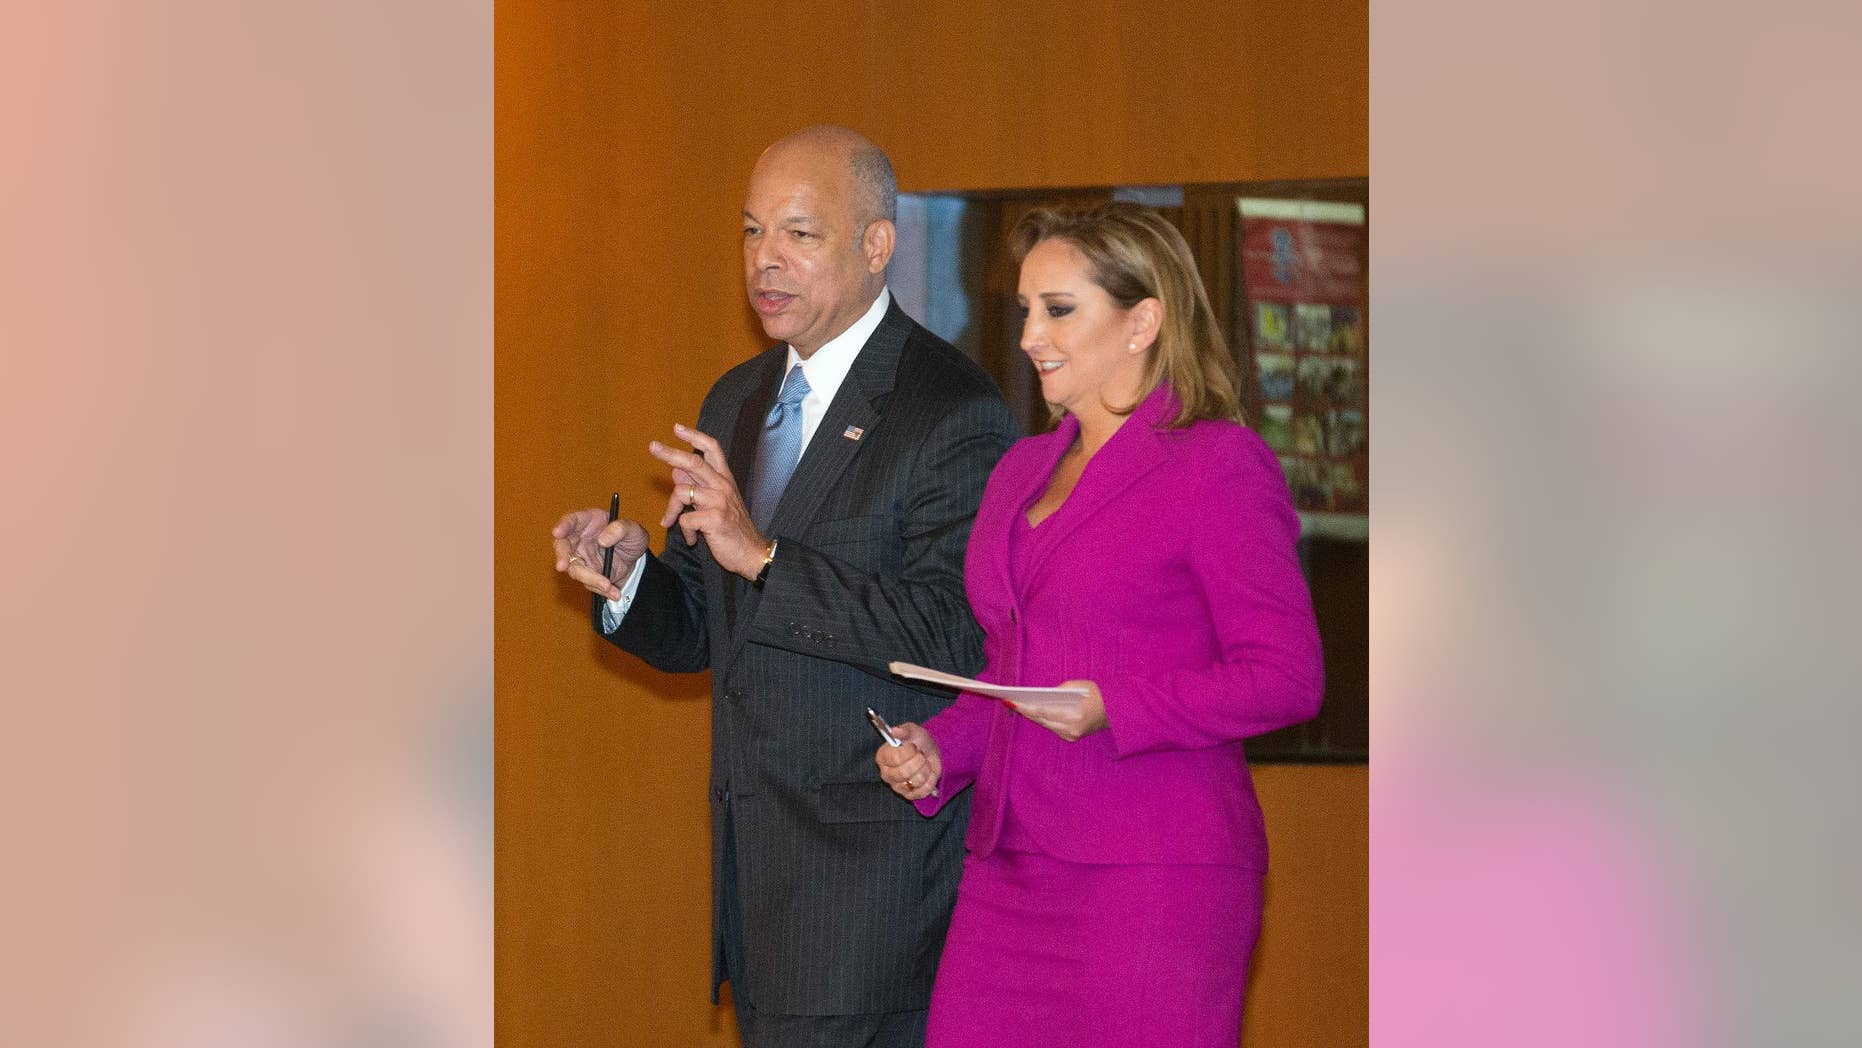 """U.S. Homeland Security Secretary Jeh Johnson, left, talks to Mexico's Foreign Affairs Minister Claudia Ruiz Massieu, in Mexico City, Tuesday, Oct. 11, 2016.  Johnson said during his visit to Mexico City, some flights to Haiti have been suspended due to Hurricane Matthew. He said Tuesday that U.S. officials will have to """"be sympathetic to the plight of the people of Haiti as a result."""" But after conditions change, """"we intend to resume the policy."""" (AP Photo/Eduardo Verdugo) (AP Photo/Eduardo Verdugo)"""